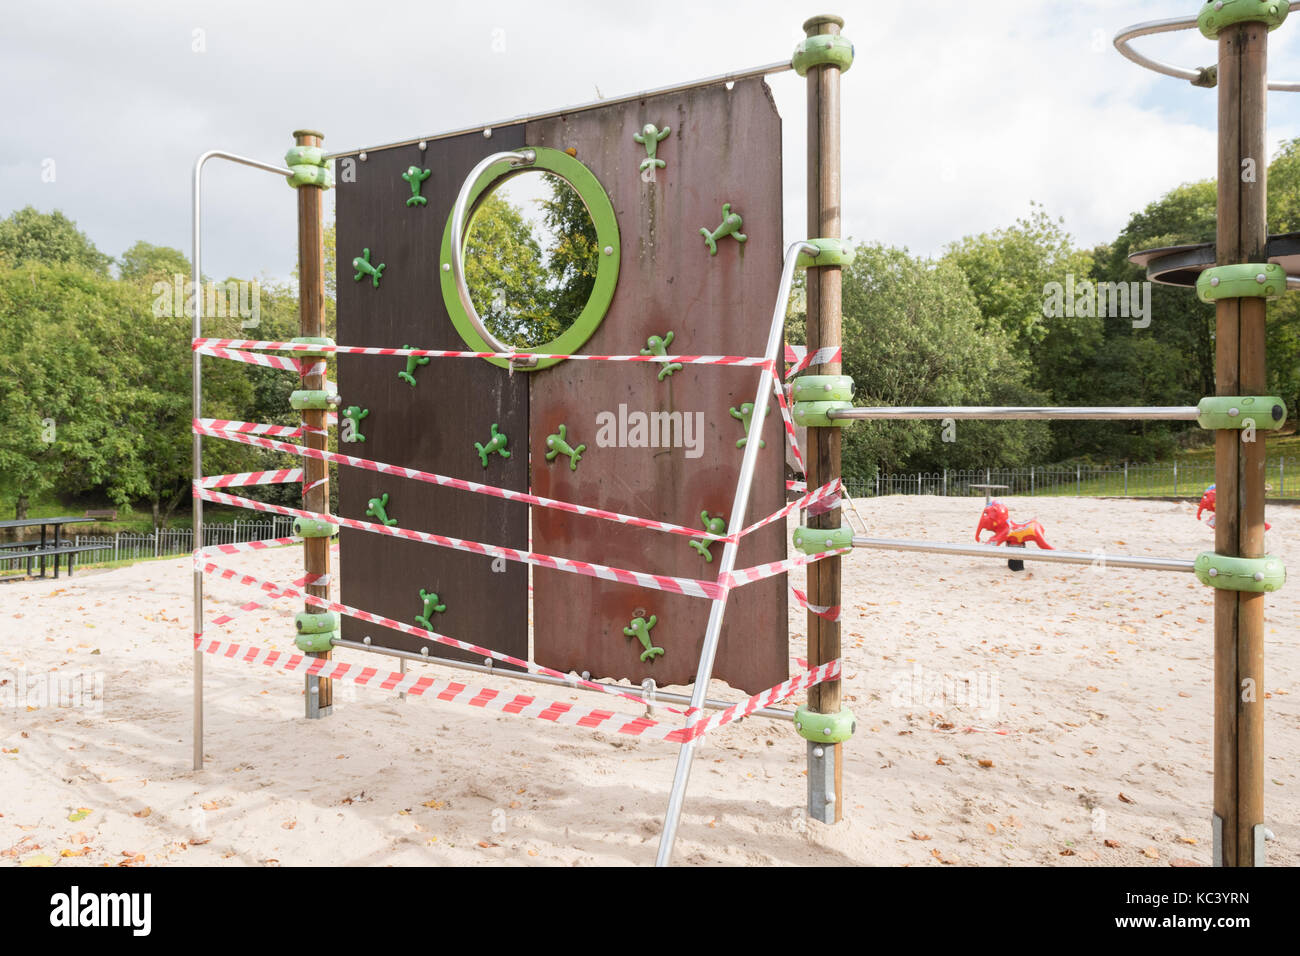 taped off broken unsafe play equipment - Stock Image